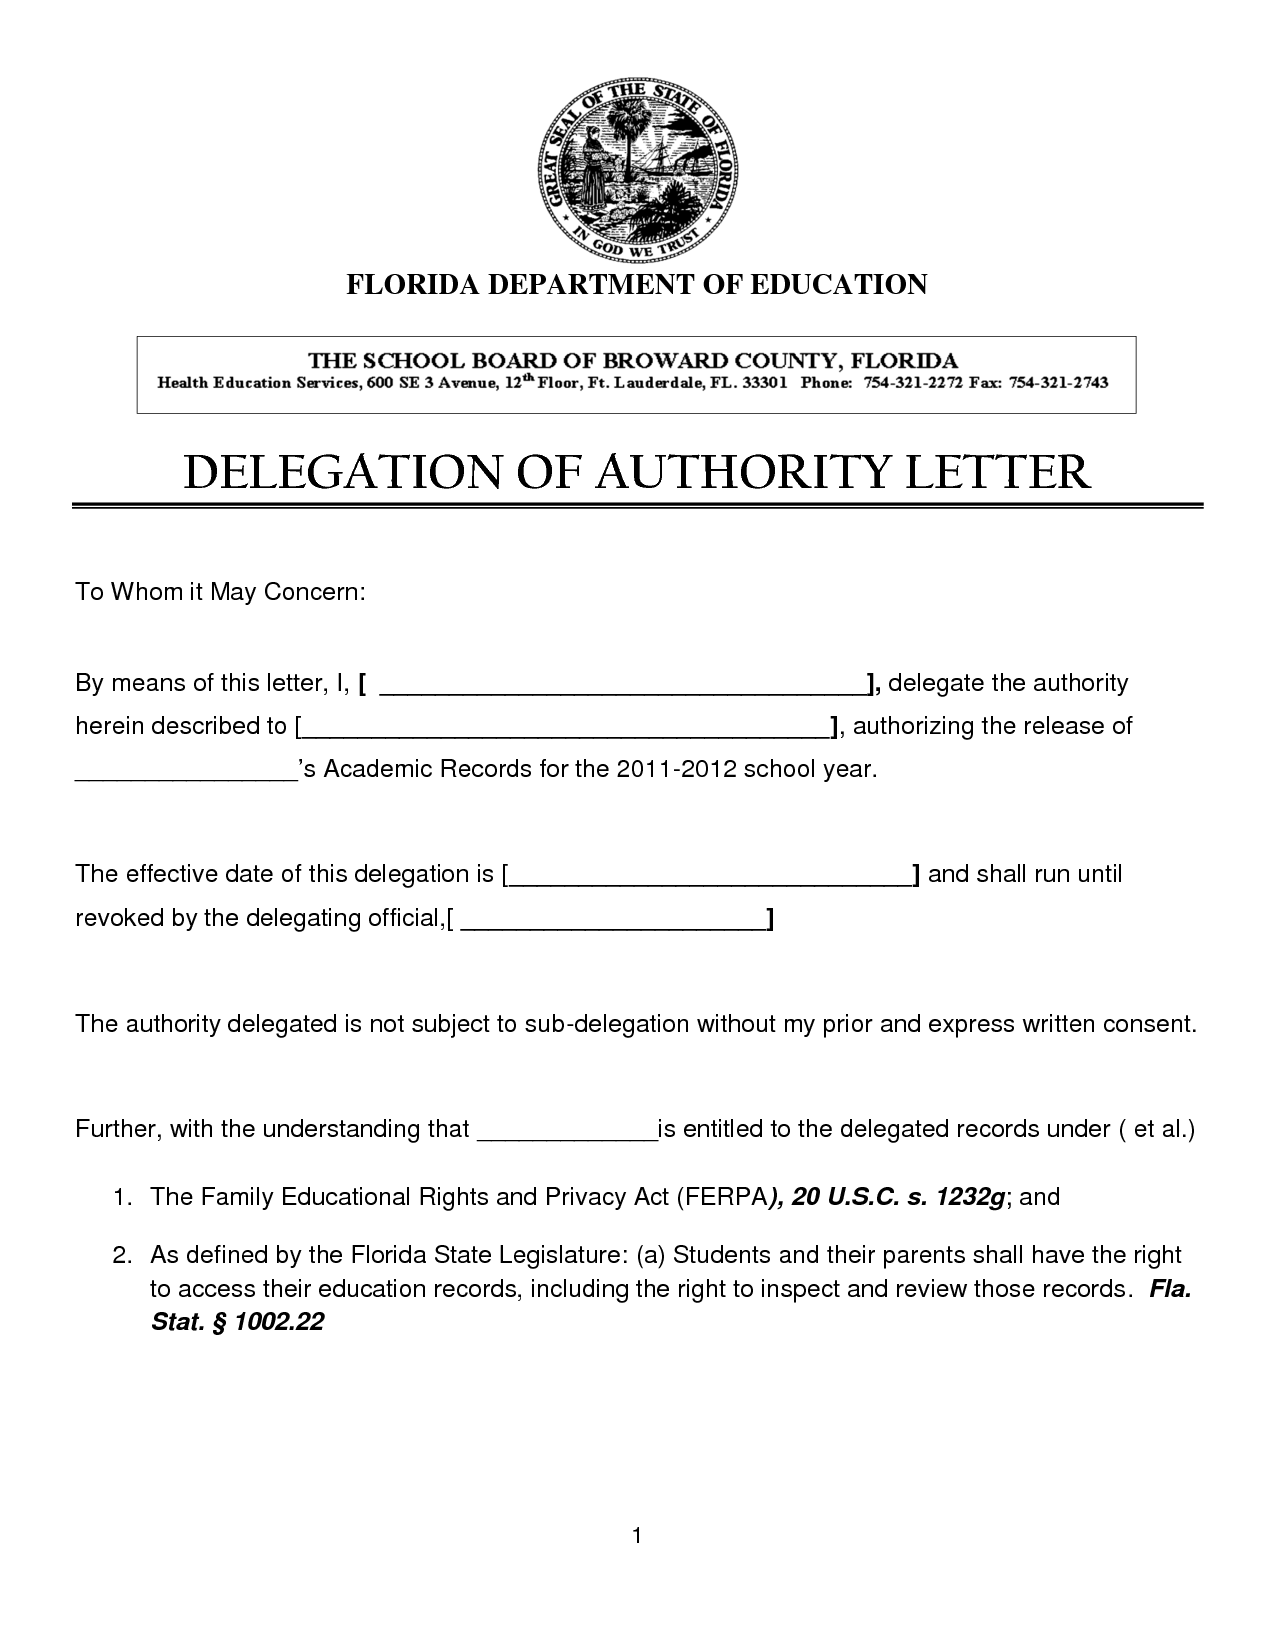 Quotes Delegation Of Authority QuotesGram – Delegation Letter